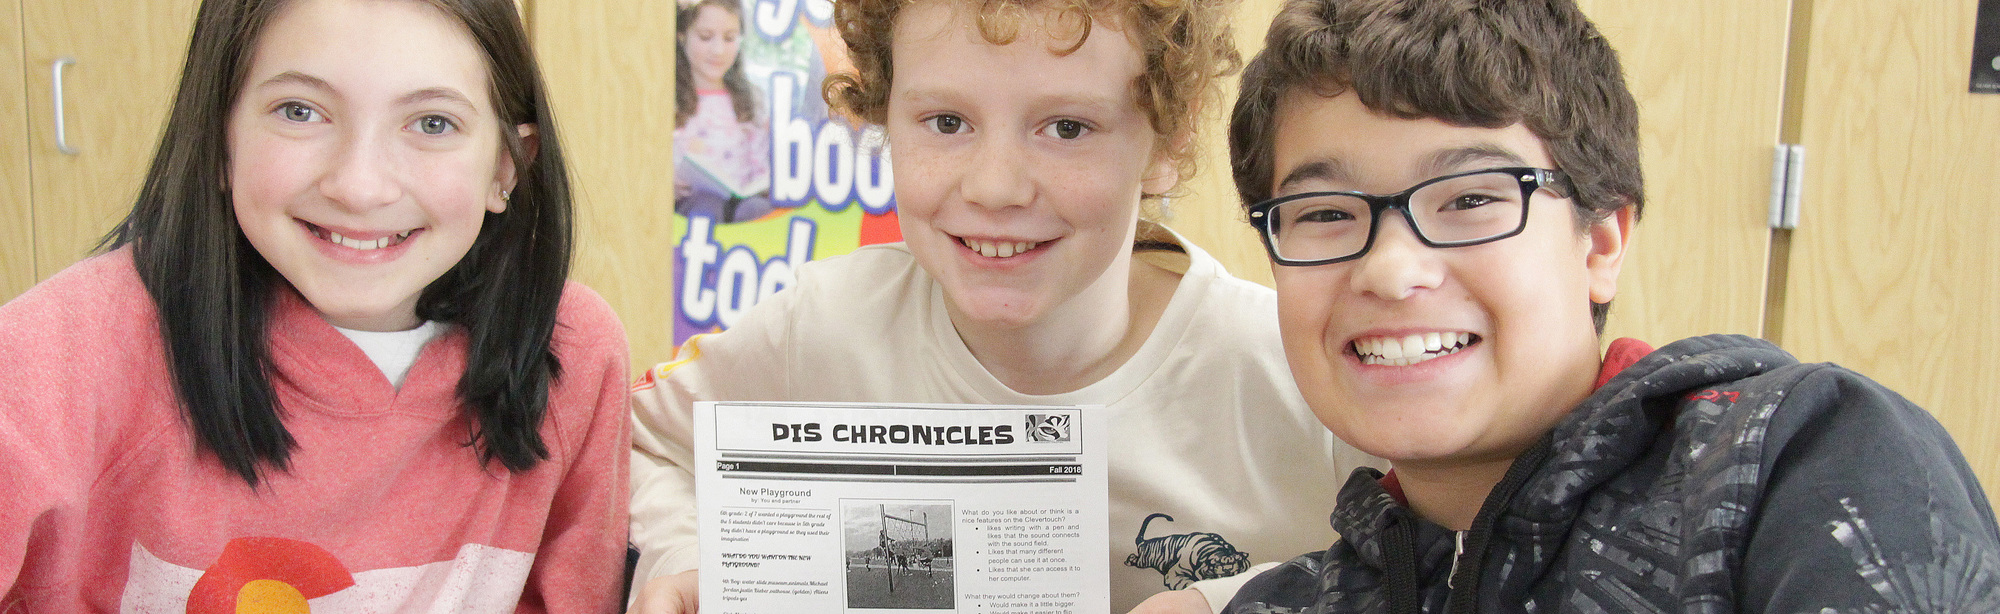 New school newspaper launches